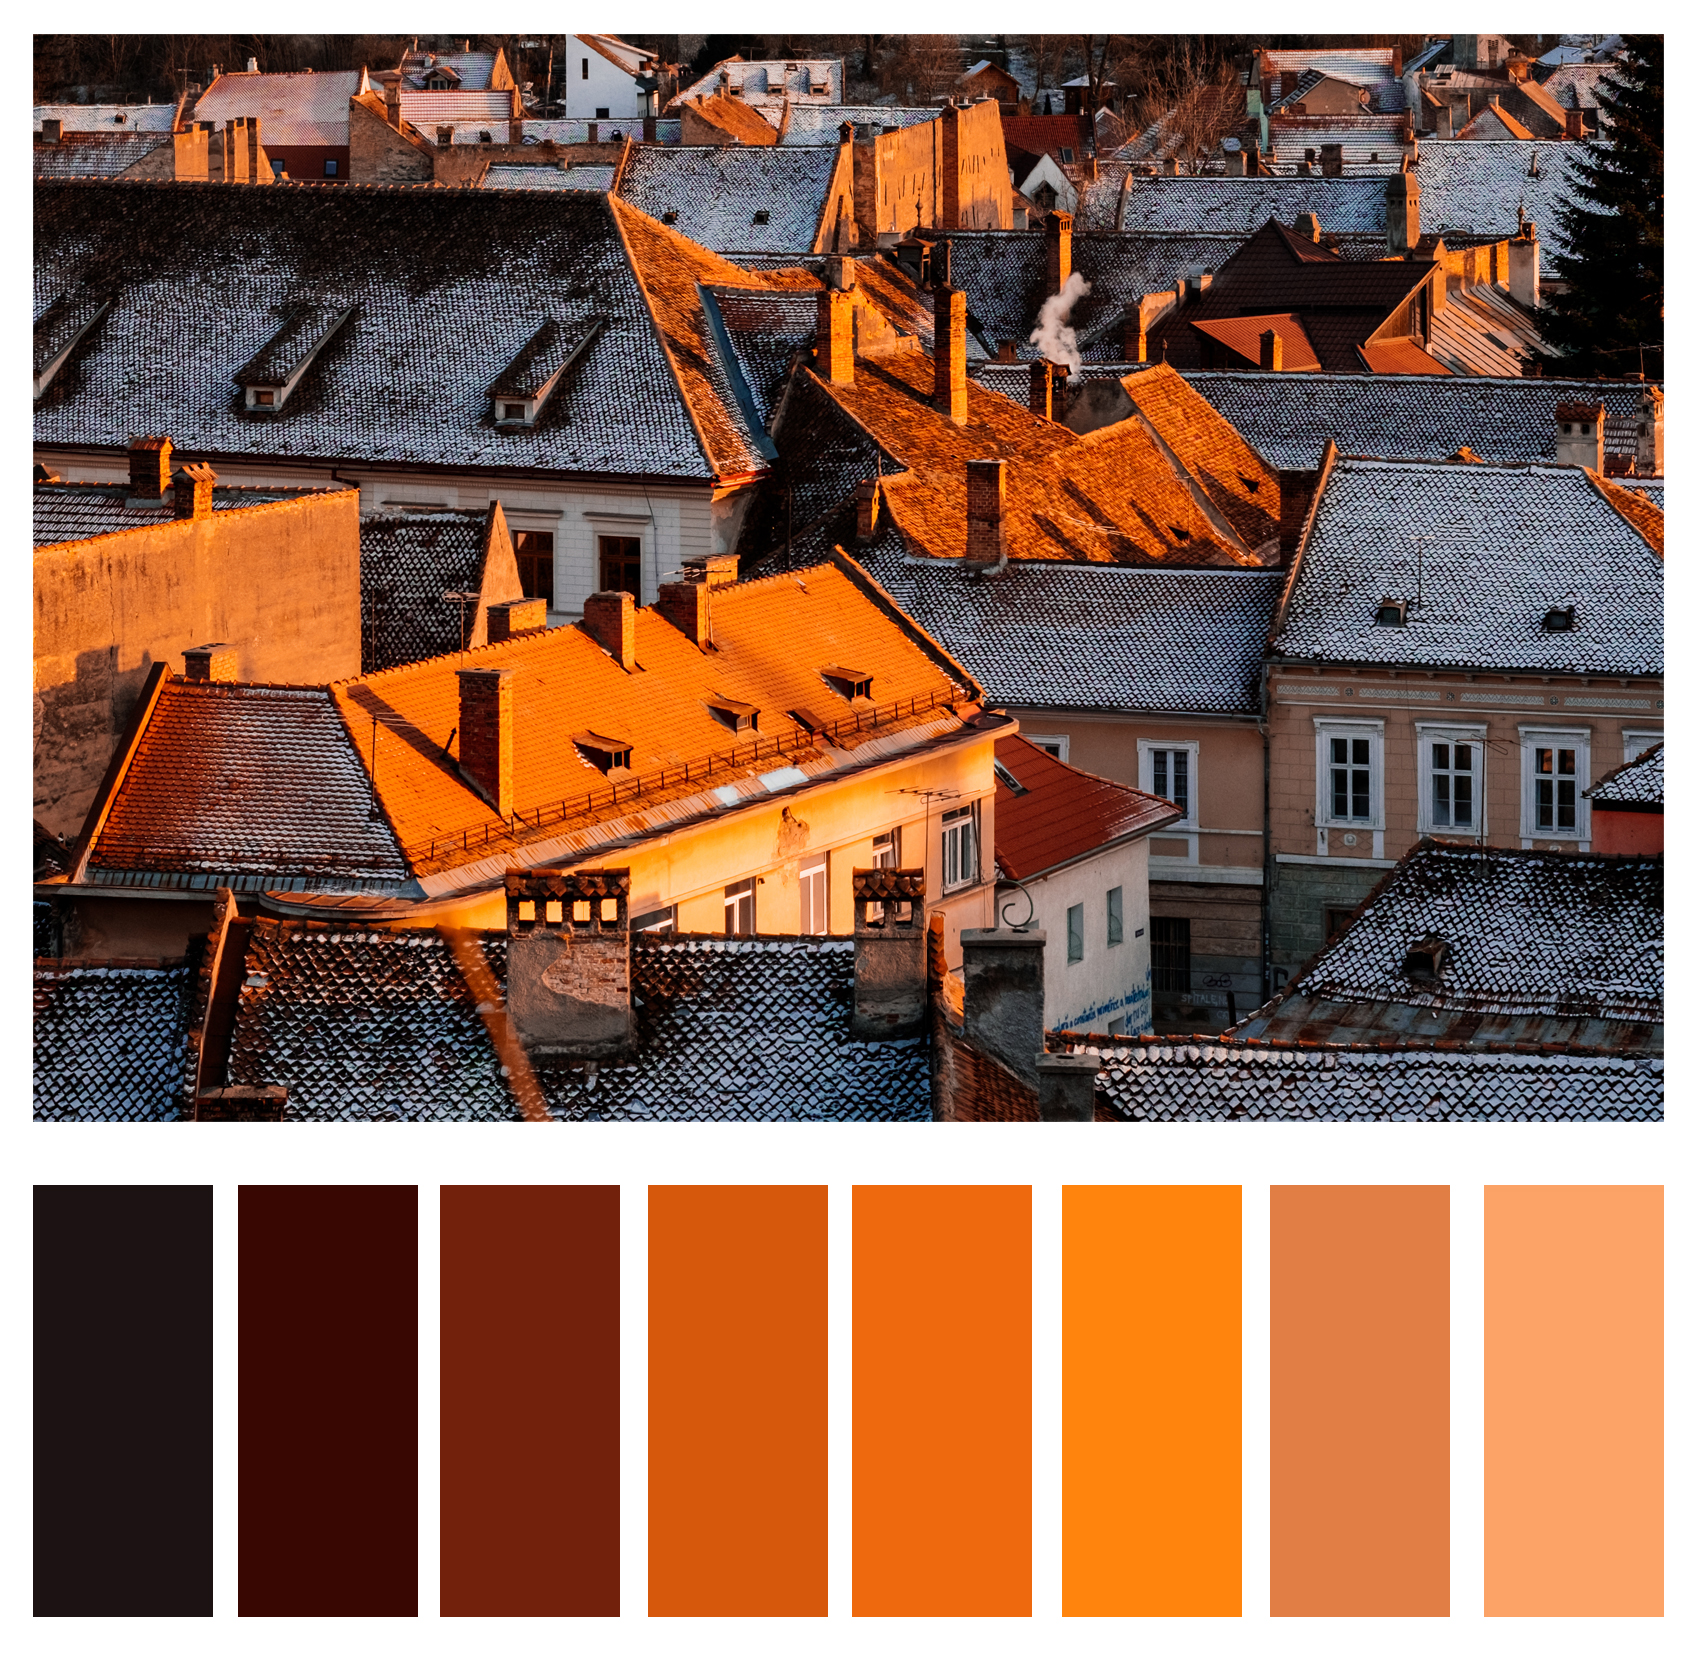 Figure 1b: Strong secondary colors often add interest and can easily become a subject on their own.